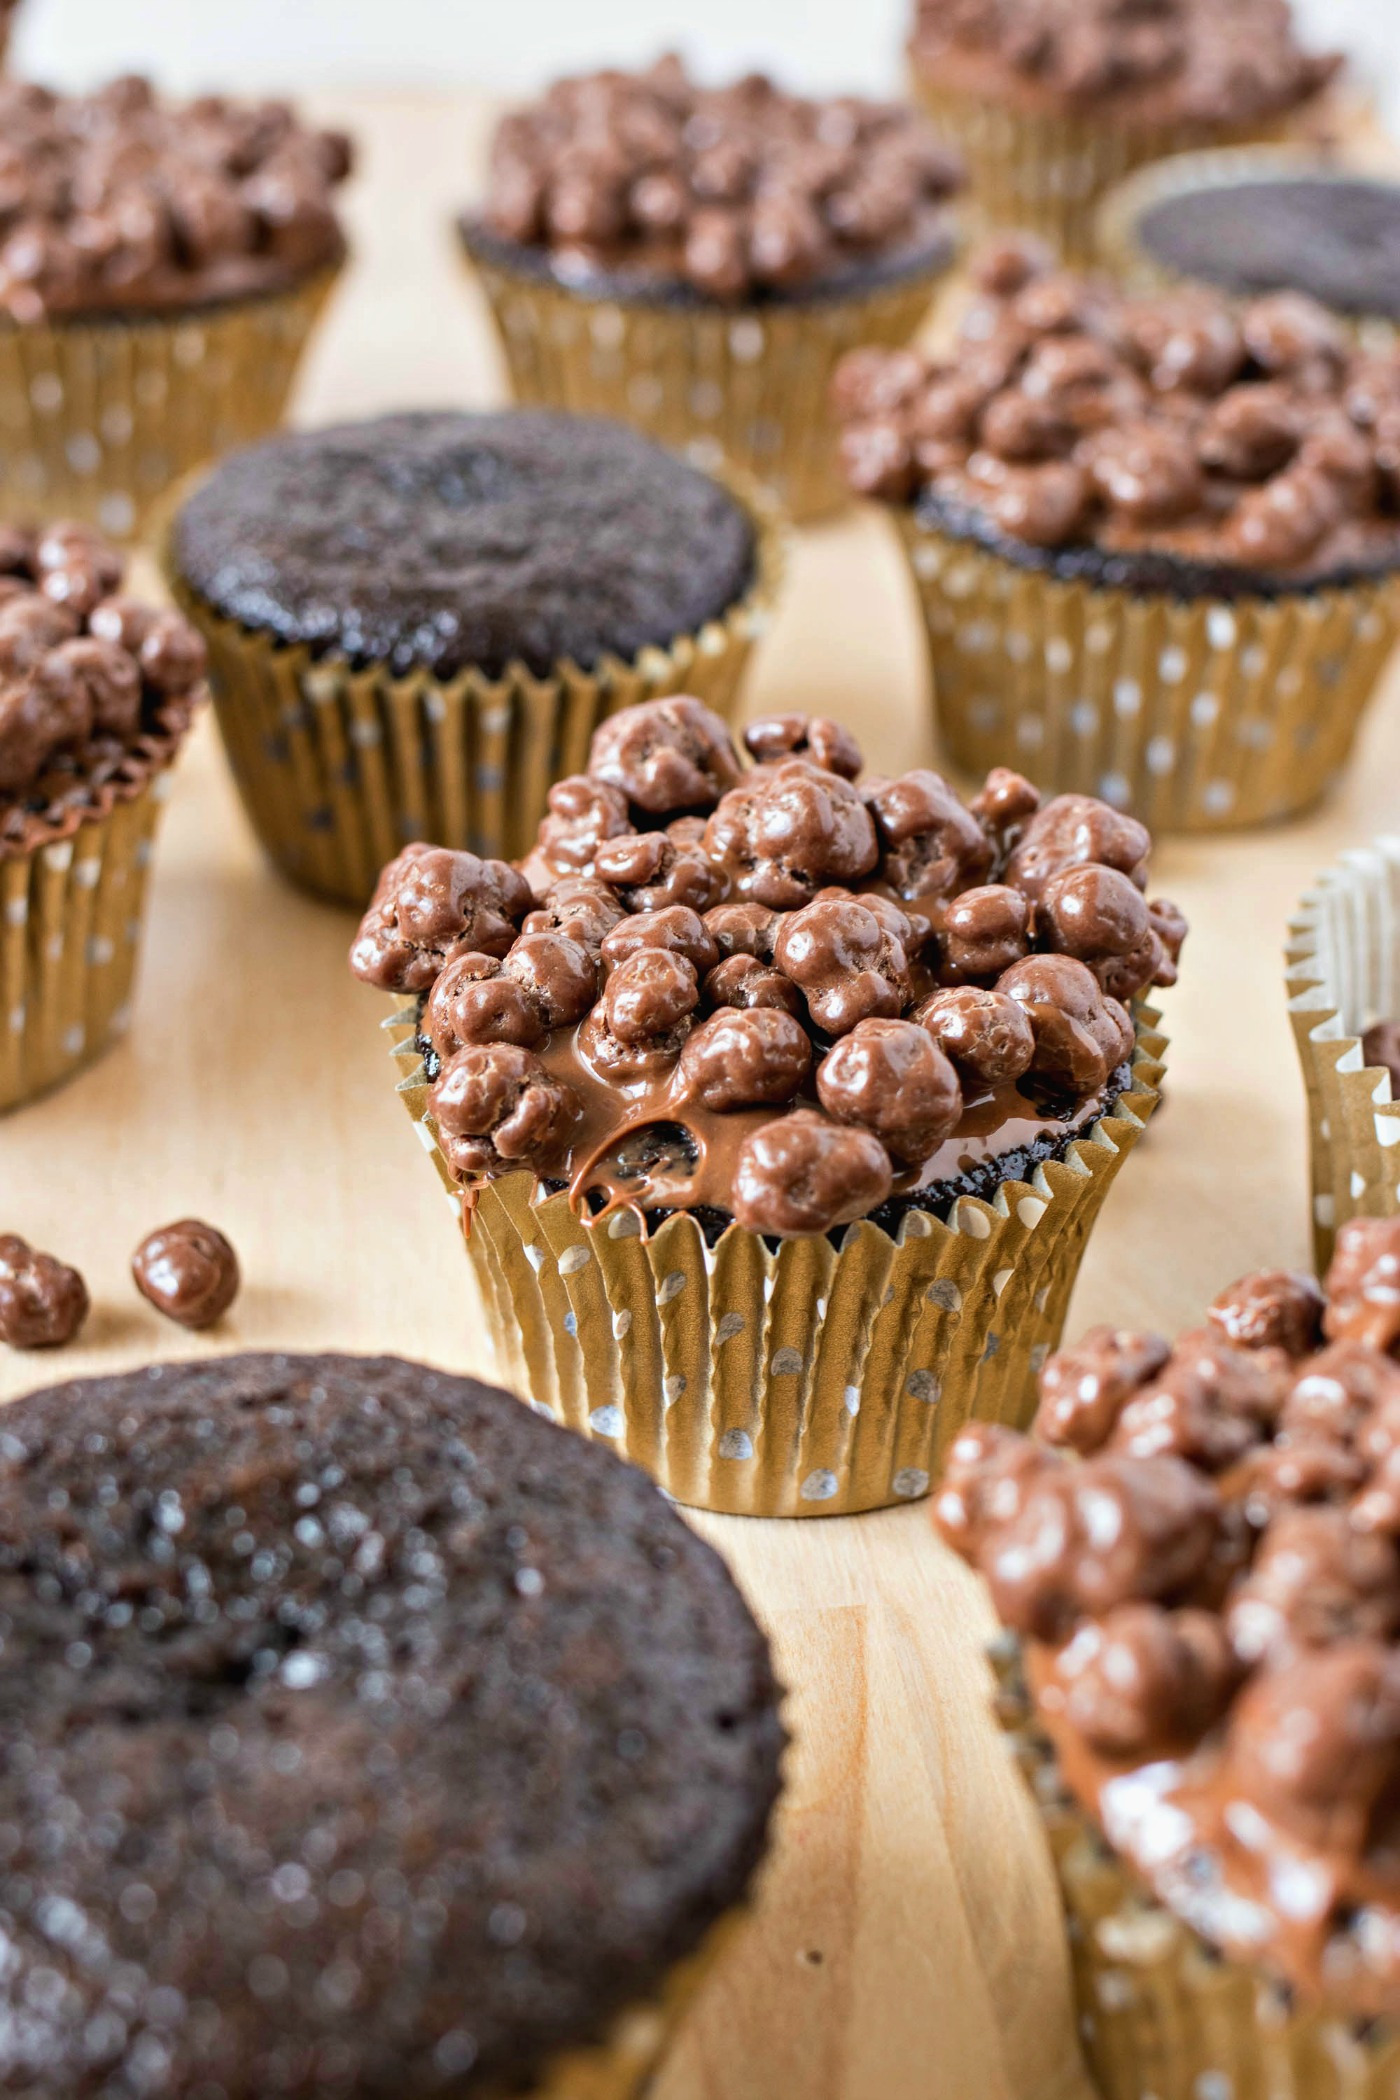 Nutella Crunch Cupcakes both topped and plain